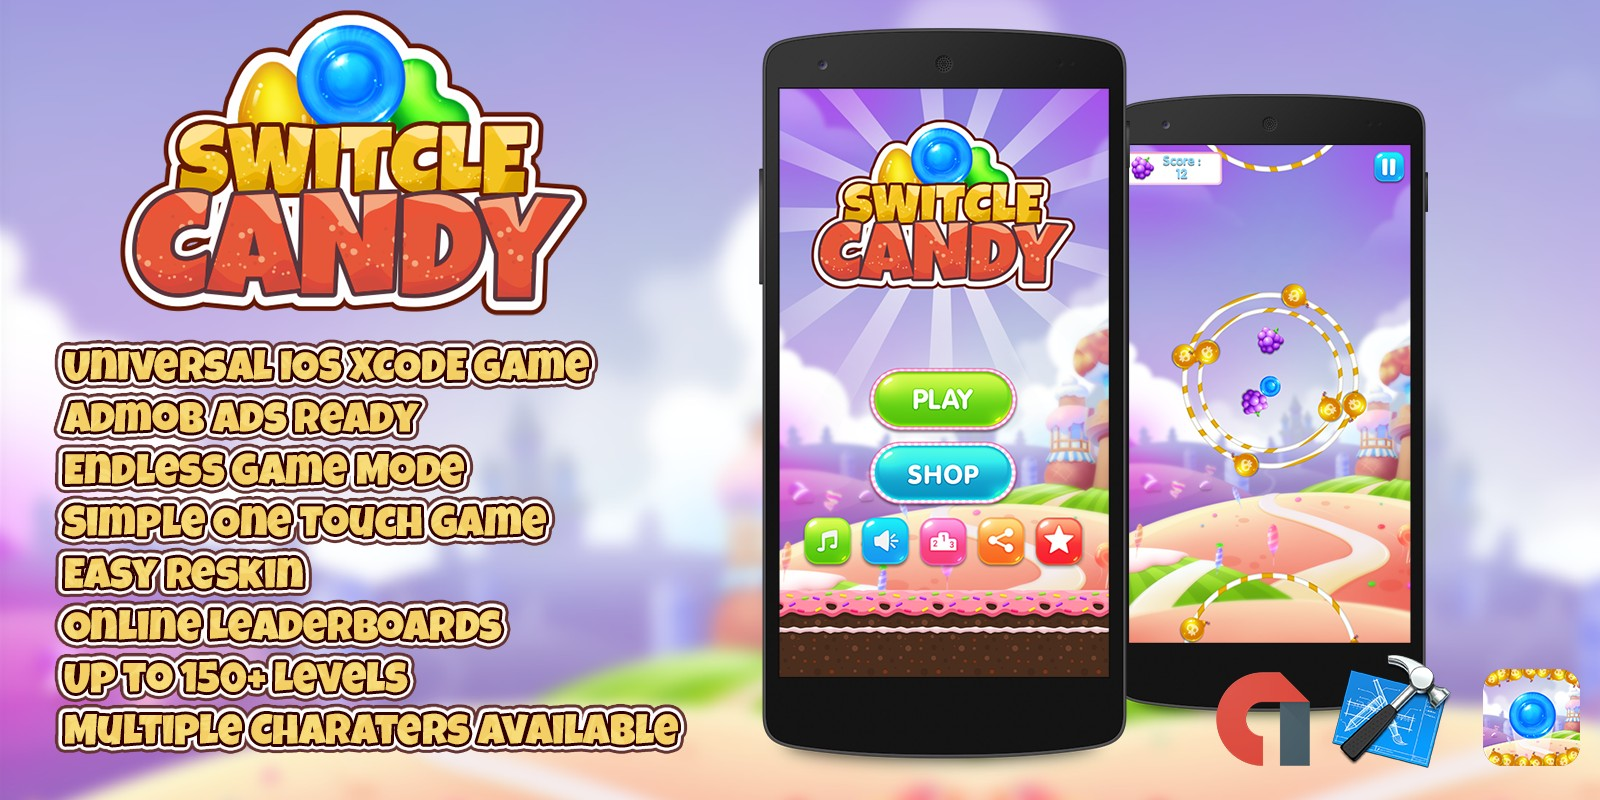 Switcle Candy - iOS Xcode Game Template